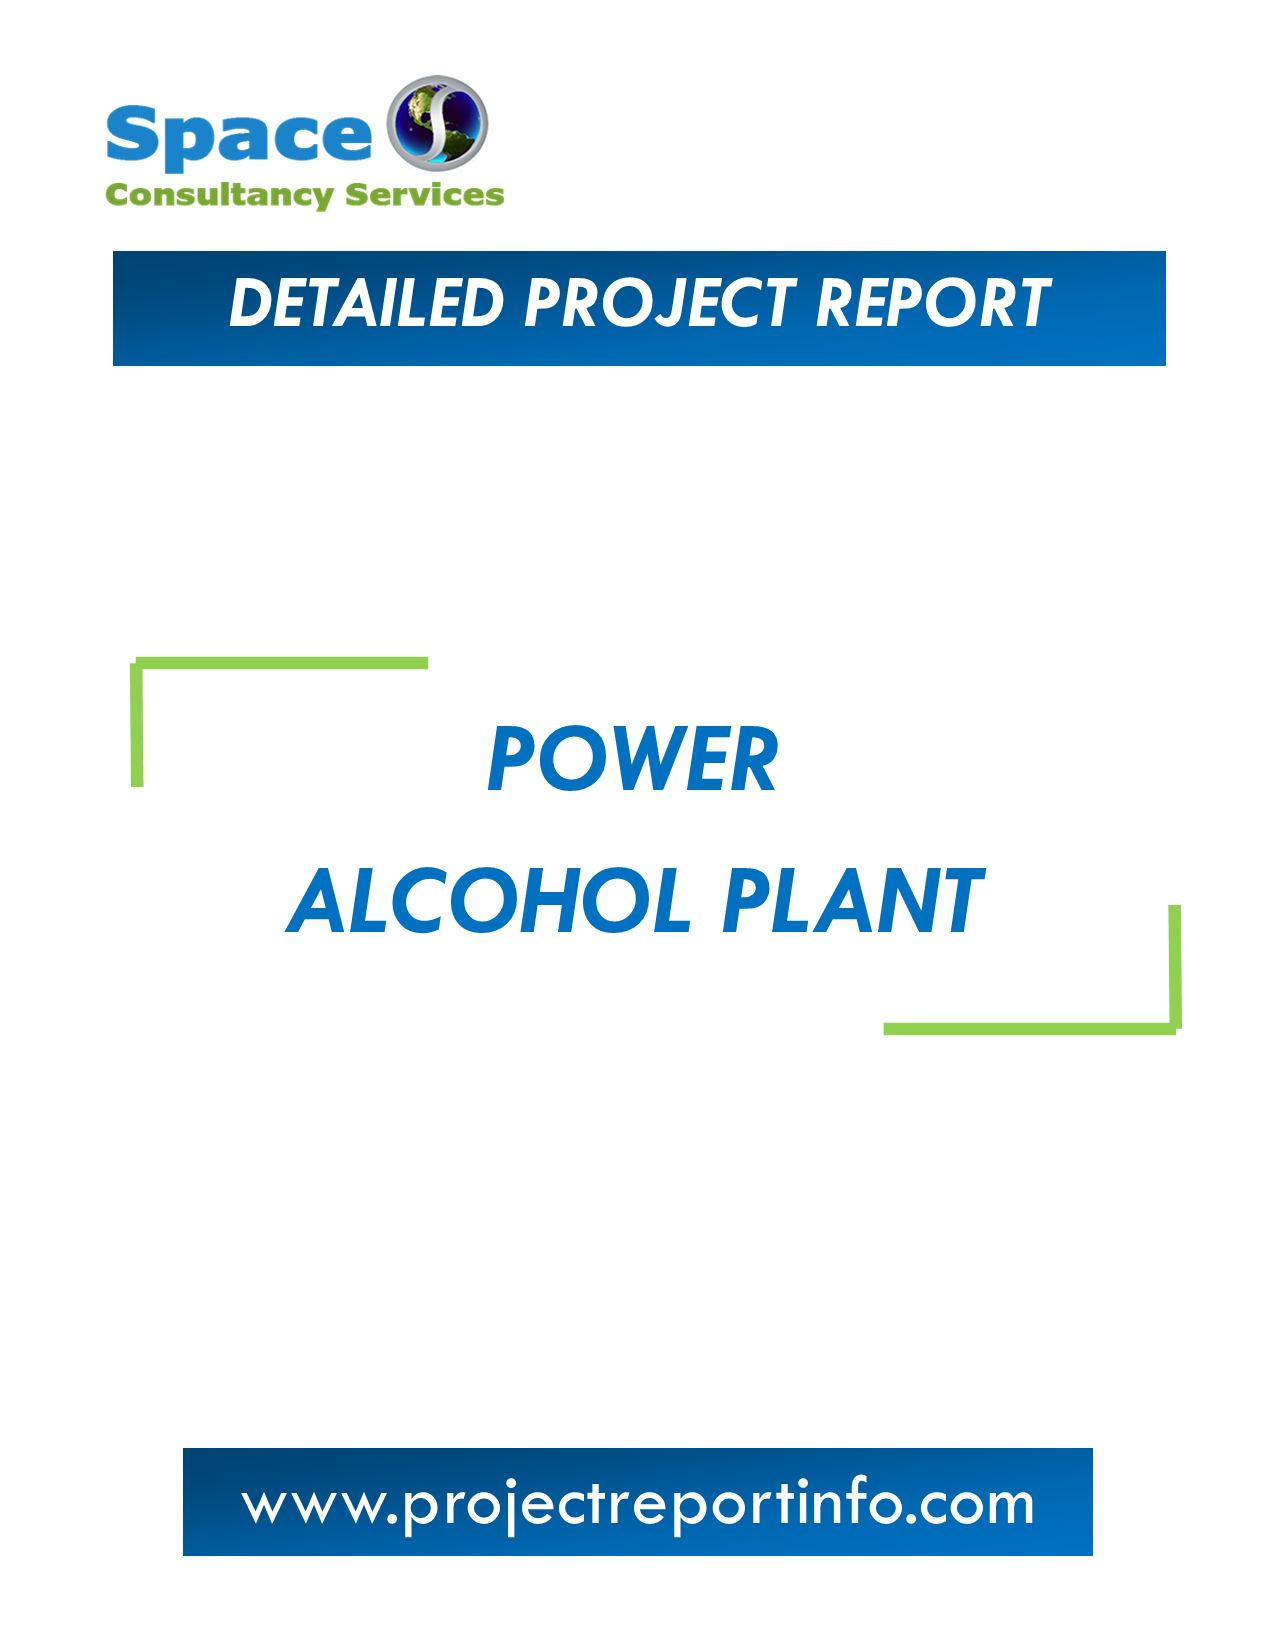 Project Report on Power Alcohol Plant